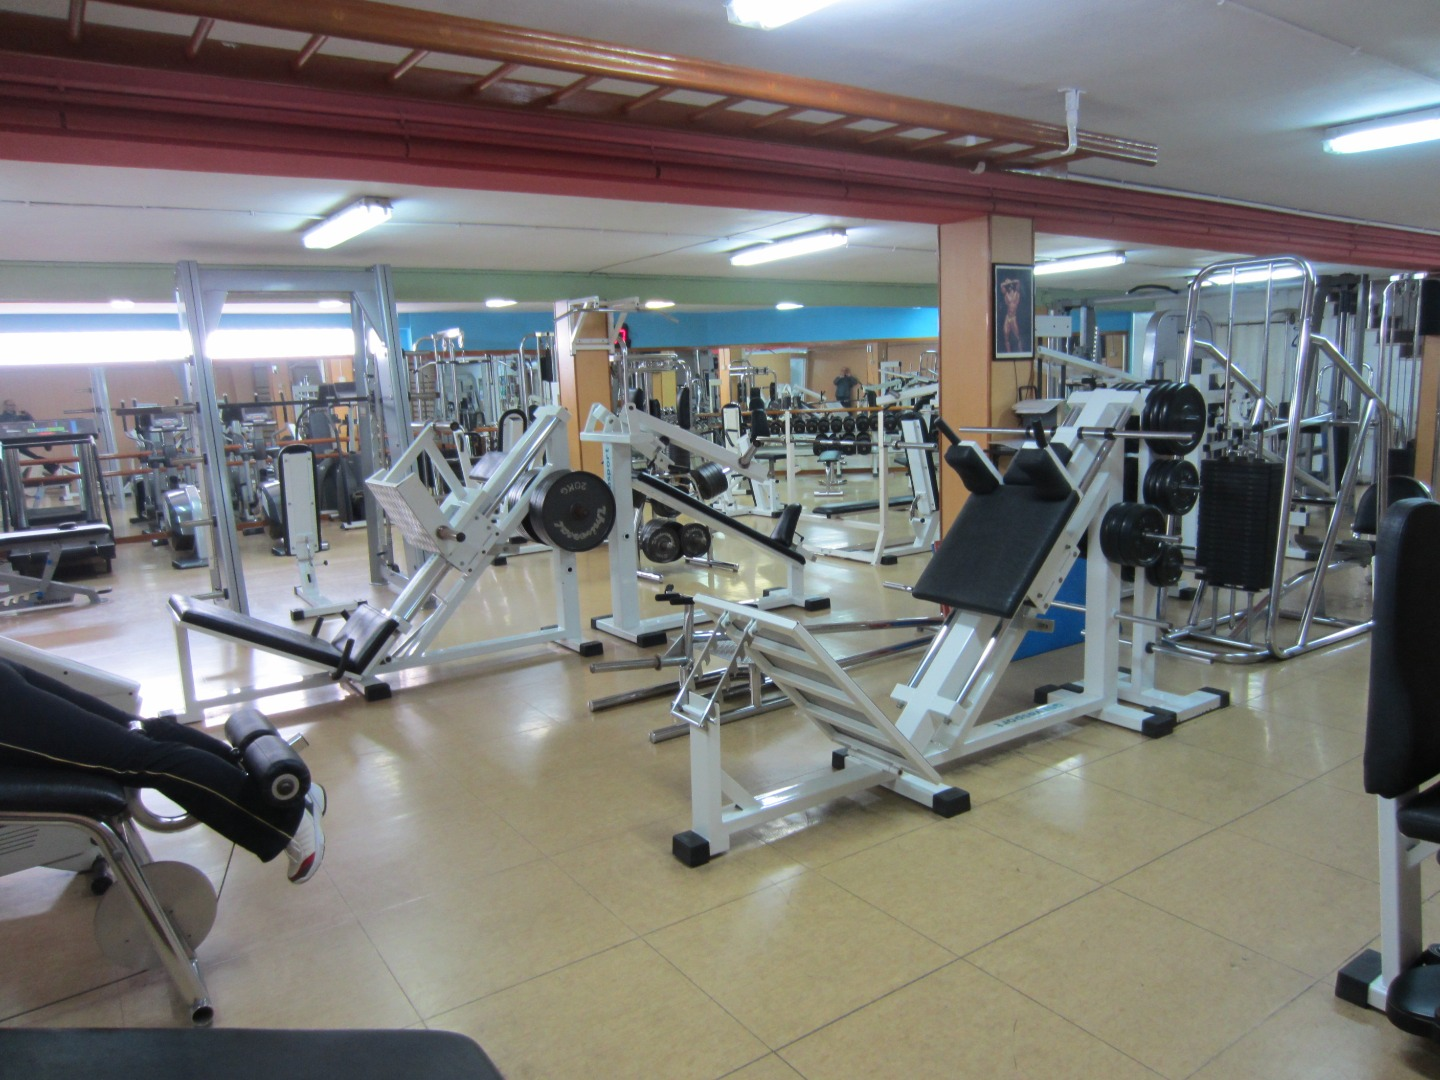 Oferta gimnasio guinard center gym barcelona gymforless for Gimnasio zamora